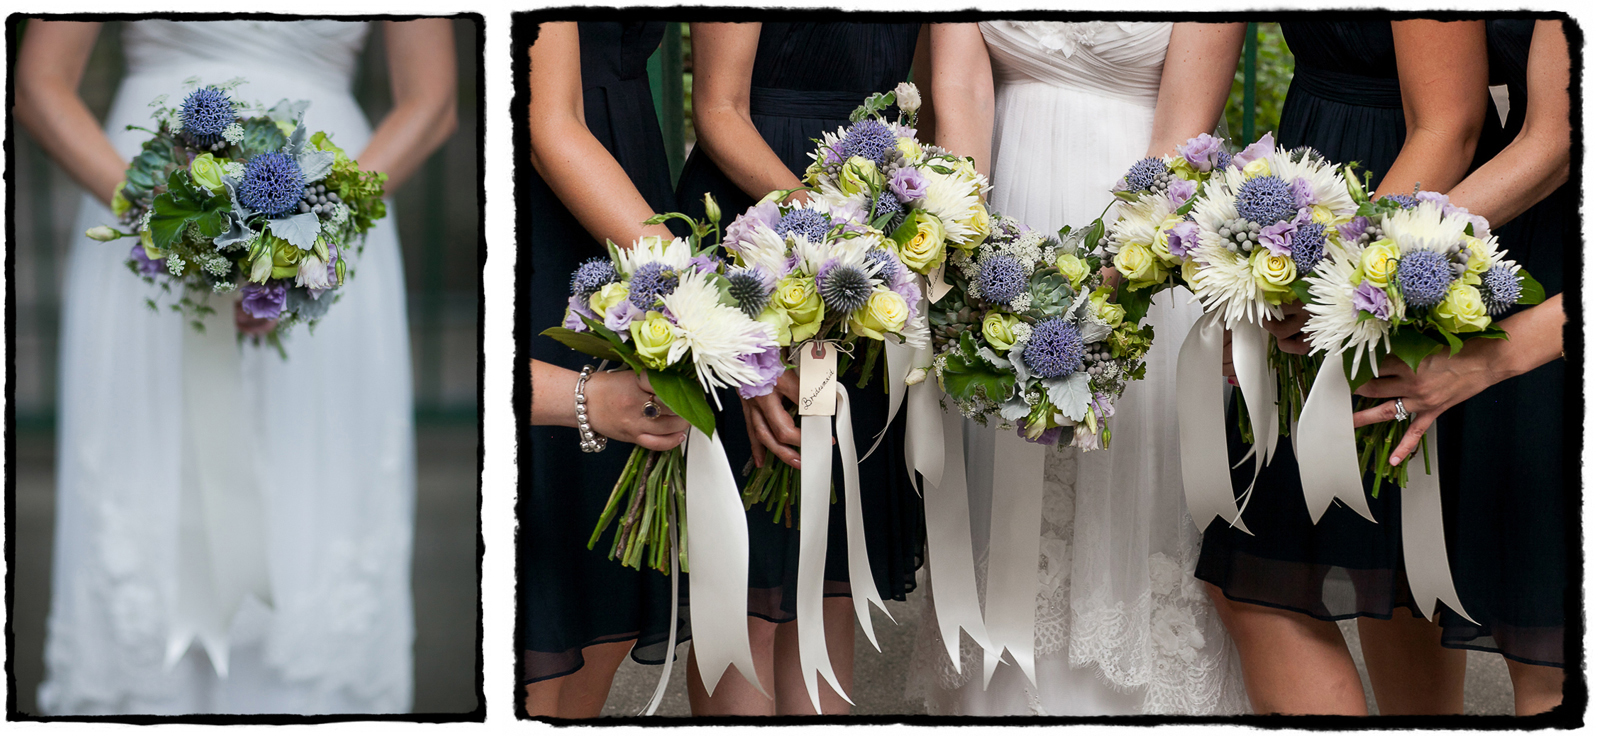 Lauren and her bridesmaids carried bouquets with purple and white flowers for her wedding at Liberty House in Jersey City.